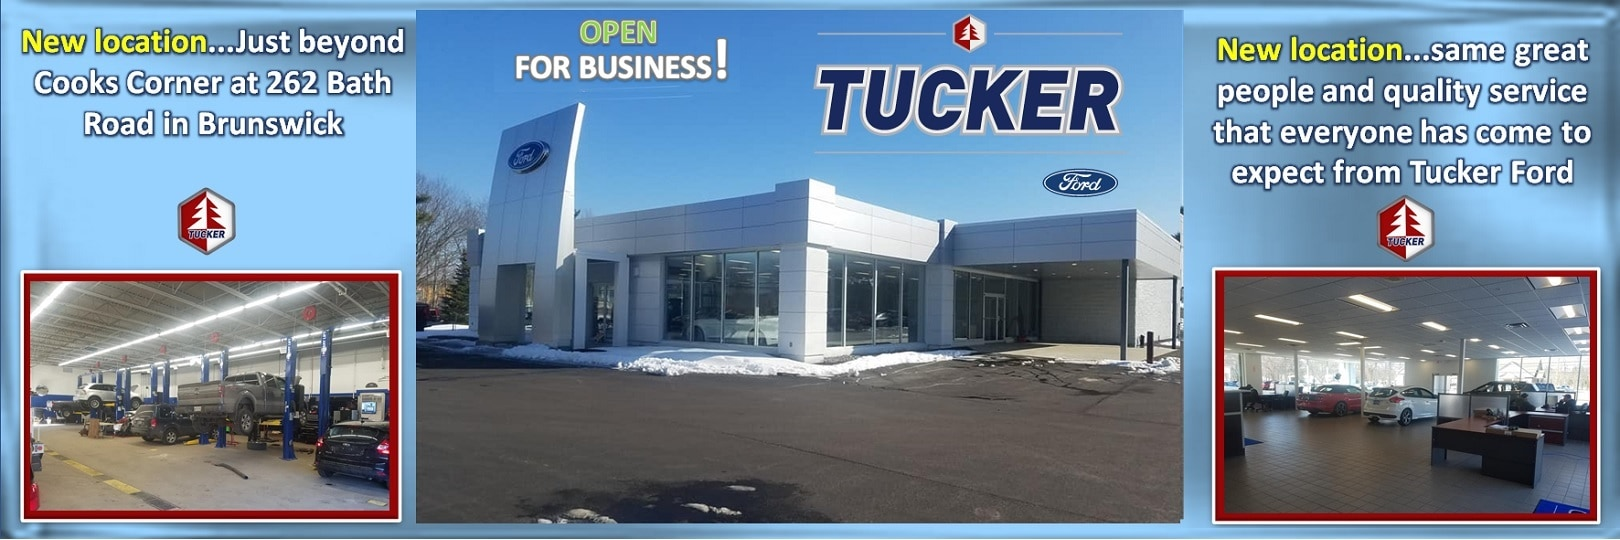 Tucker Ford New Used Ford Dealership In Brunswick ME - Ford dealers in maine